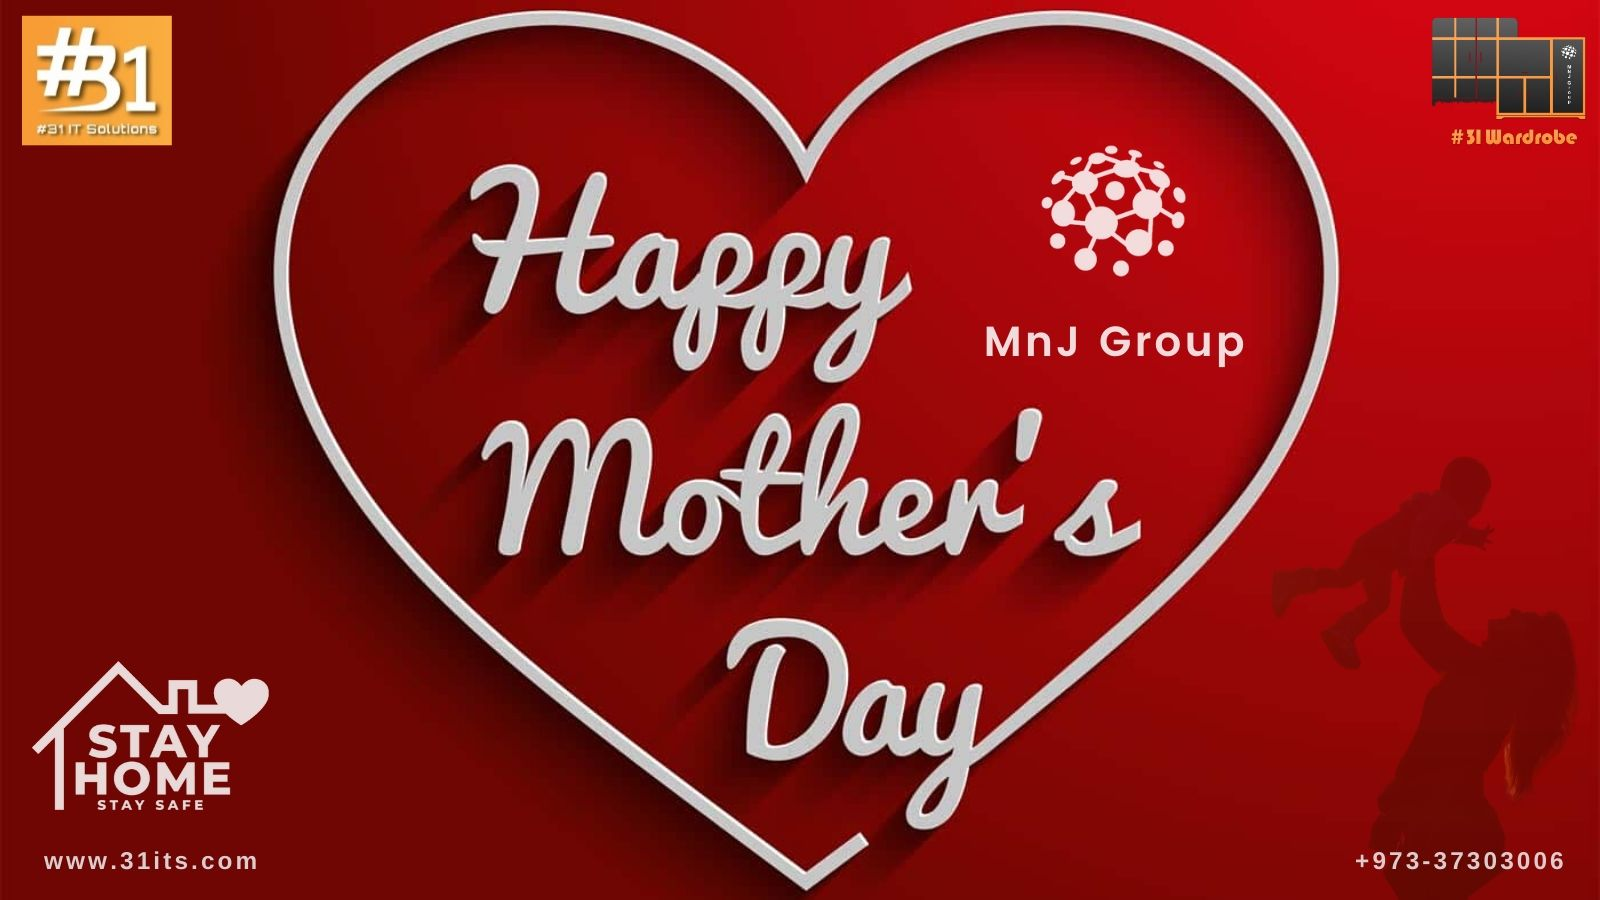 Mothers Day - #31 IT SOlutions